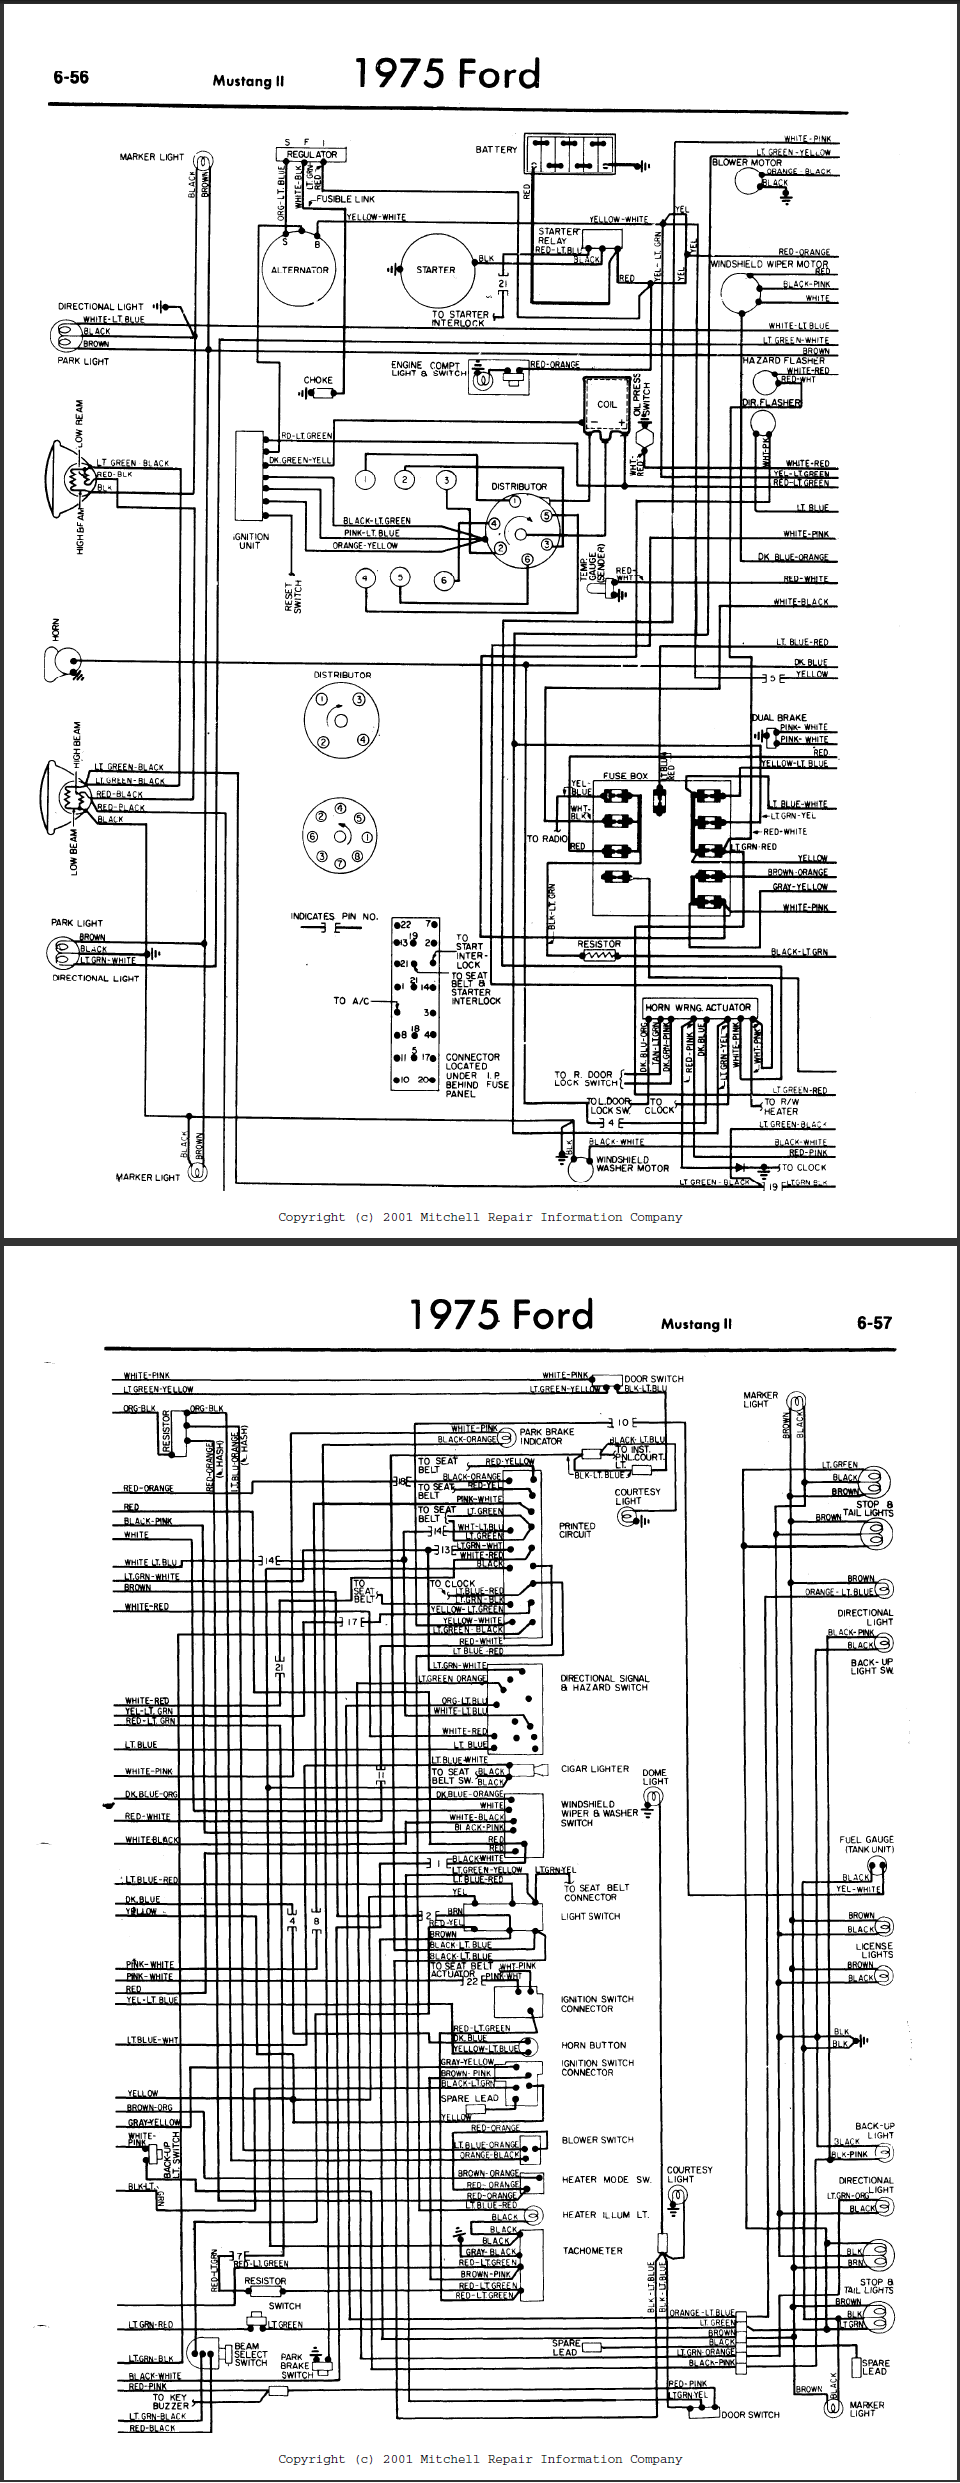 1982 Mustang Wiring Diagram - Home Wiring Diagram camp-material -  camp-material.rossileautosrl.it | Mustang Skid Steer Wiring Diagrams 1982 |  | camp-material.rossileautosrl.it